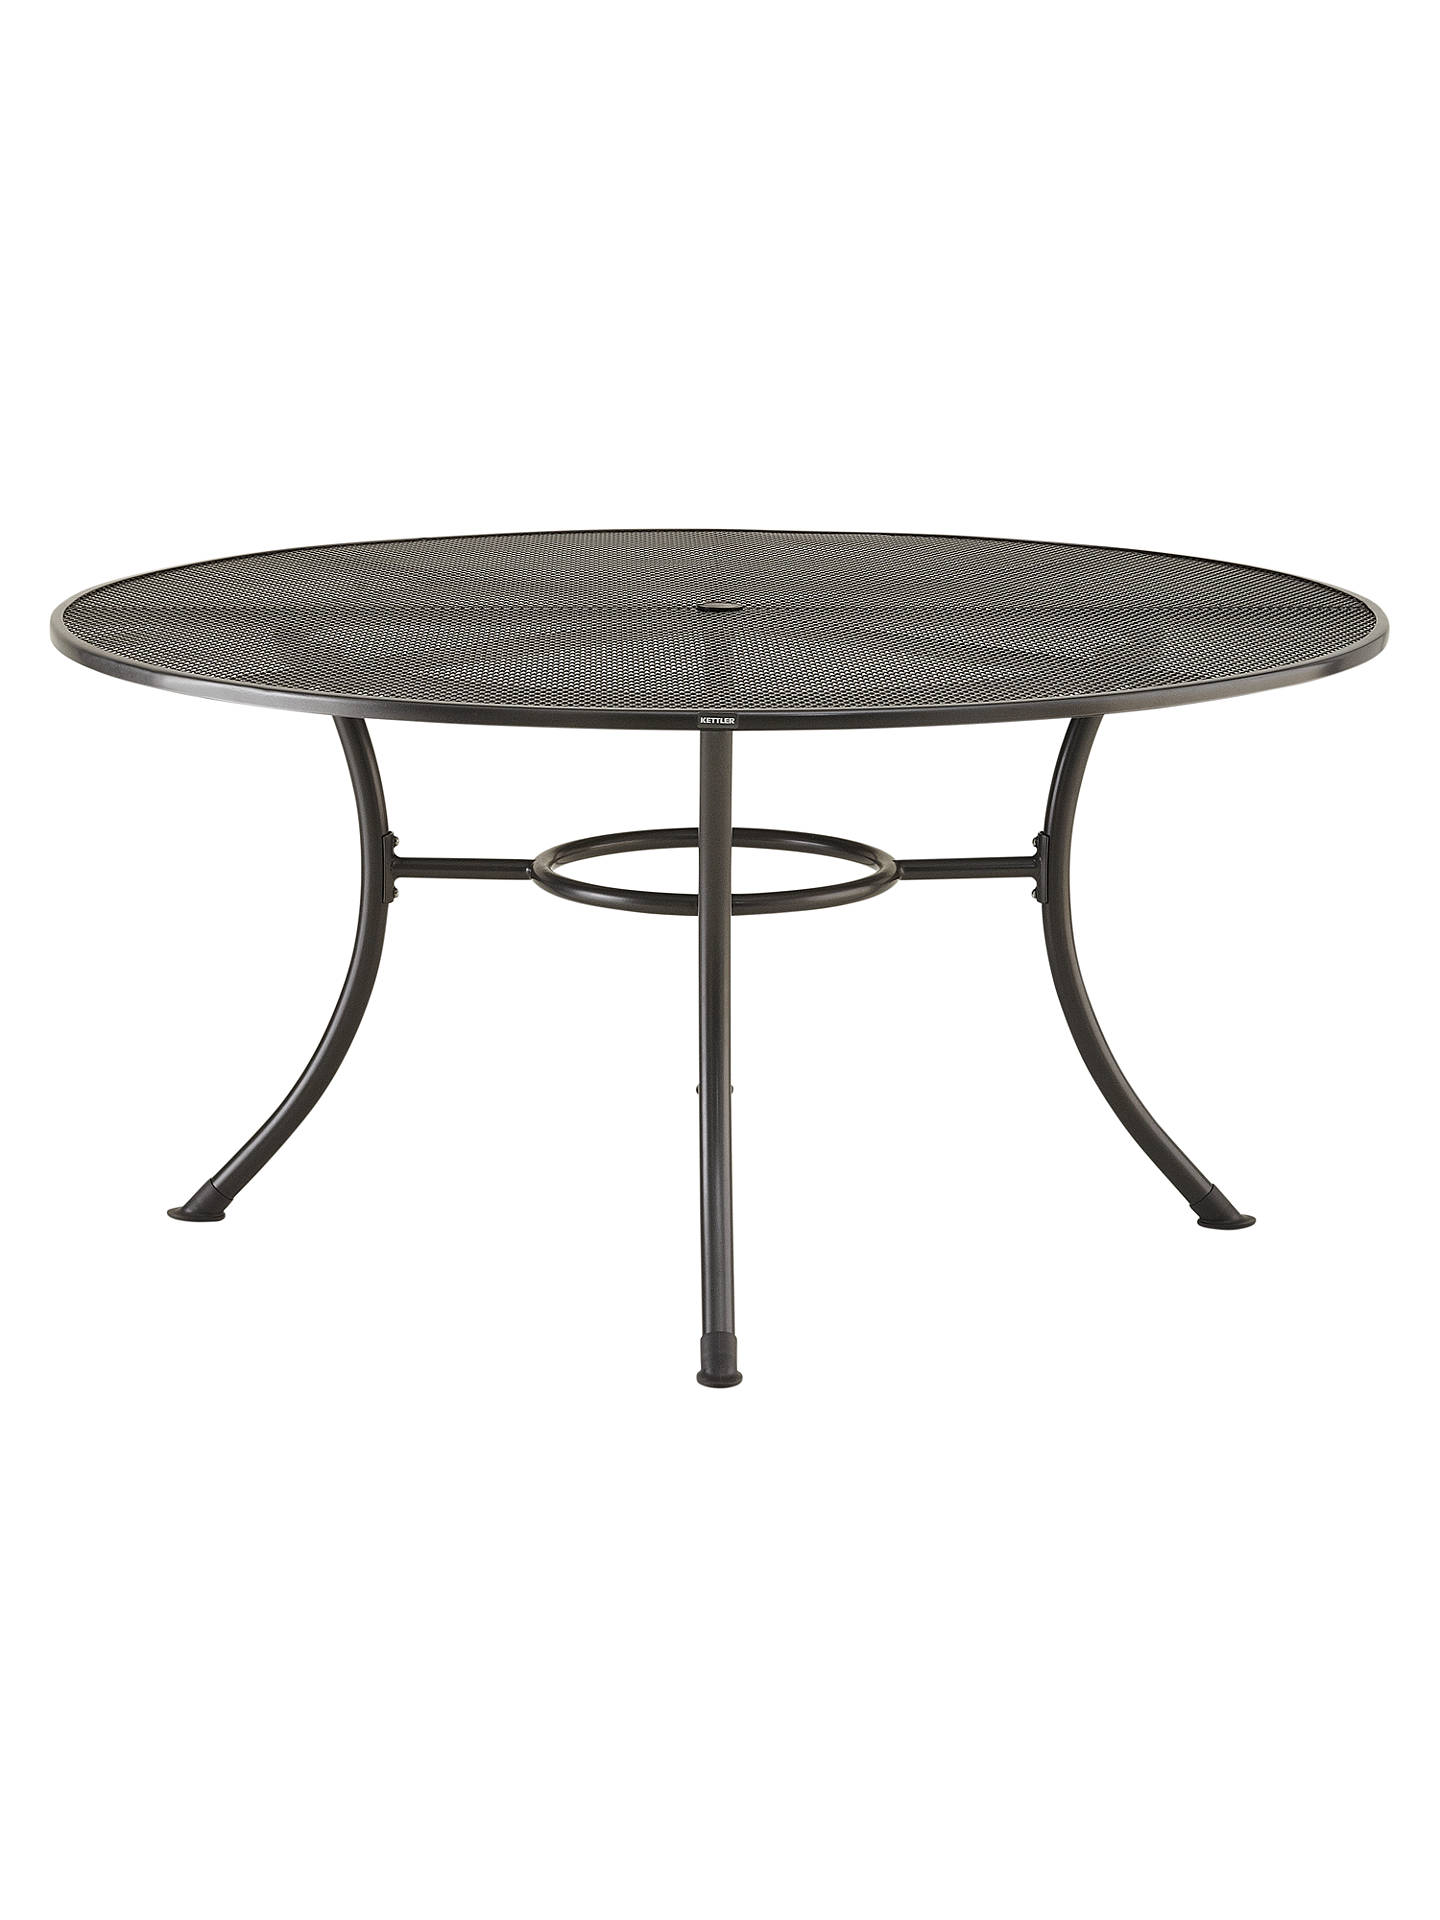 Buyjohn lewis partners henley by kettler round 6 seater garden dining table dia